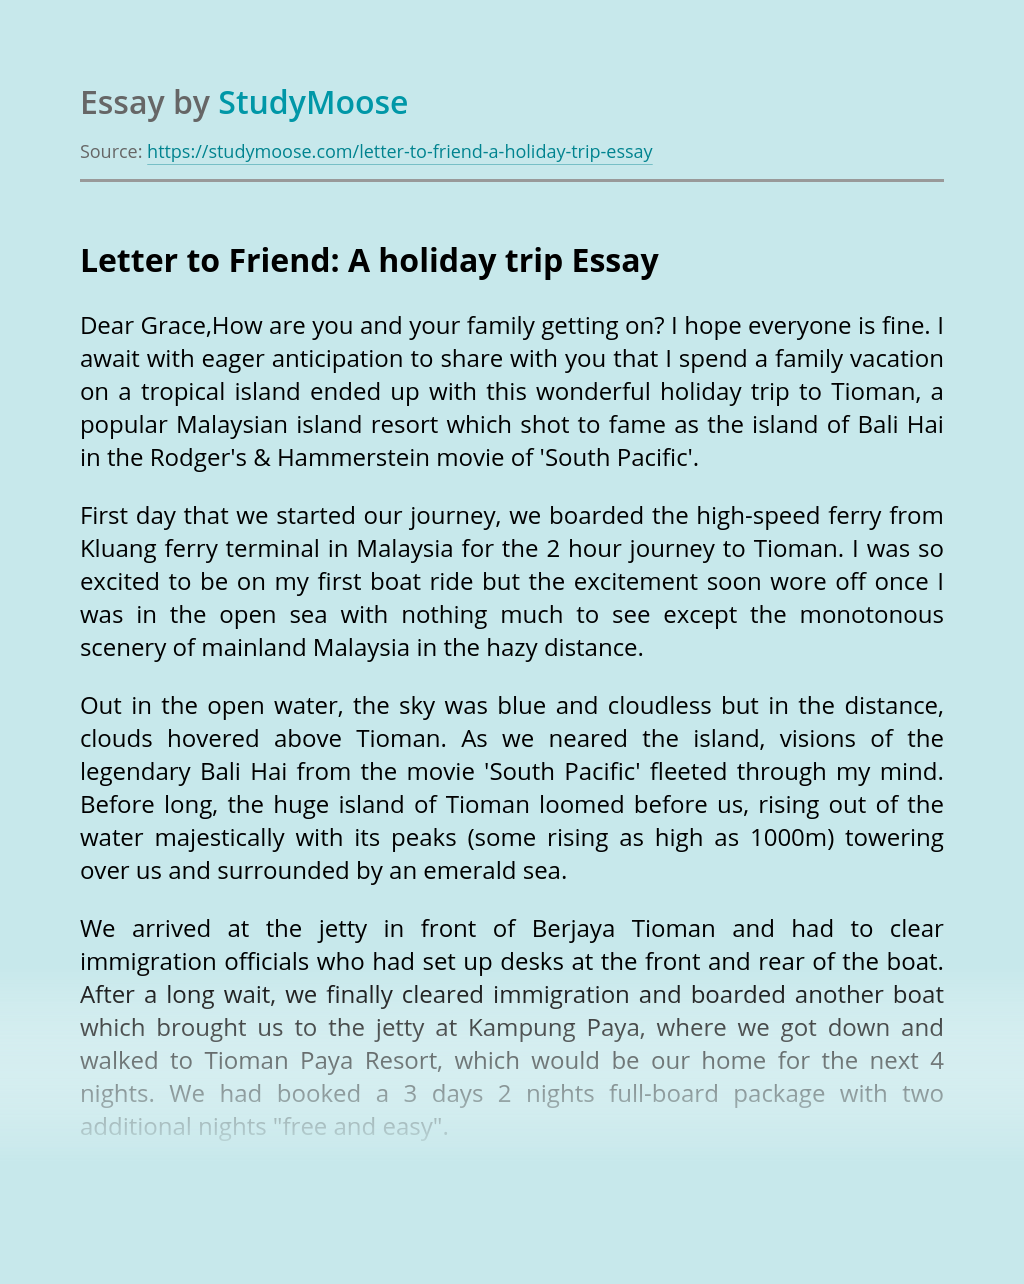 Letter to Friend: A holiday trip